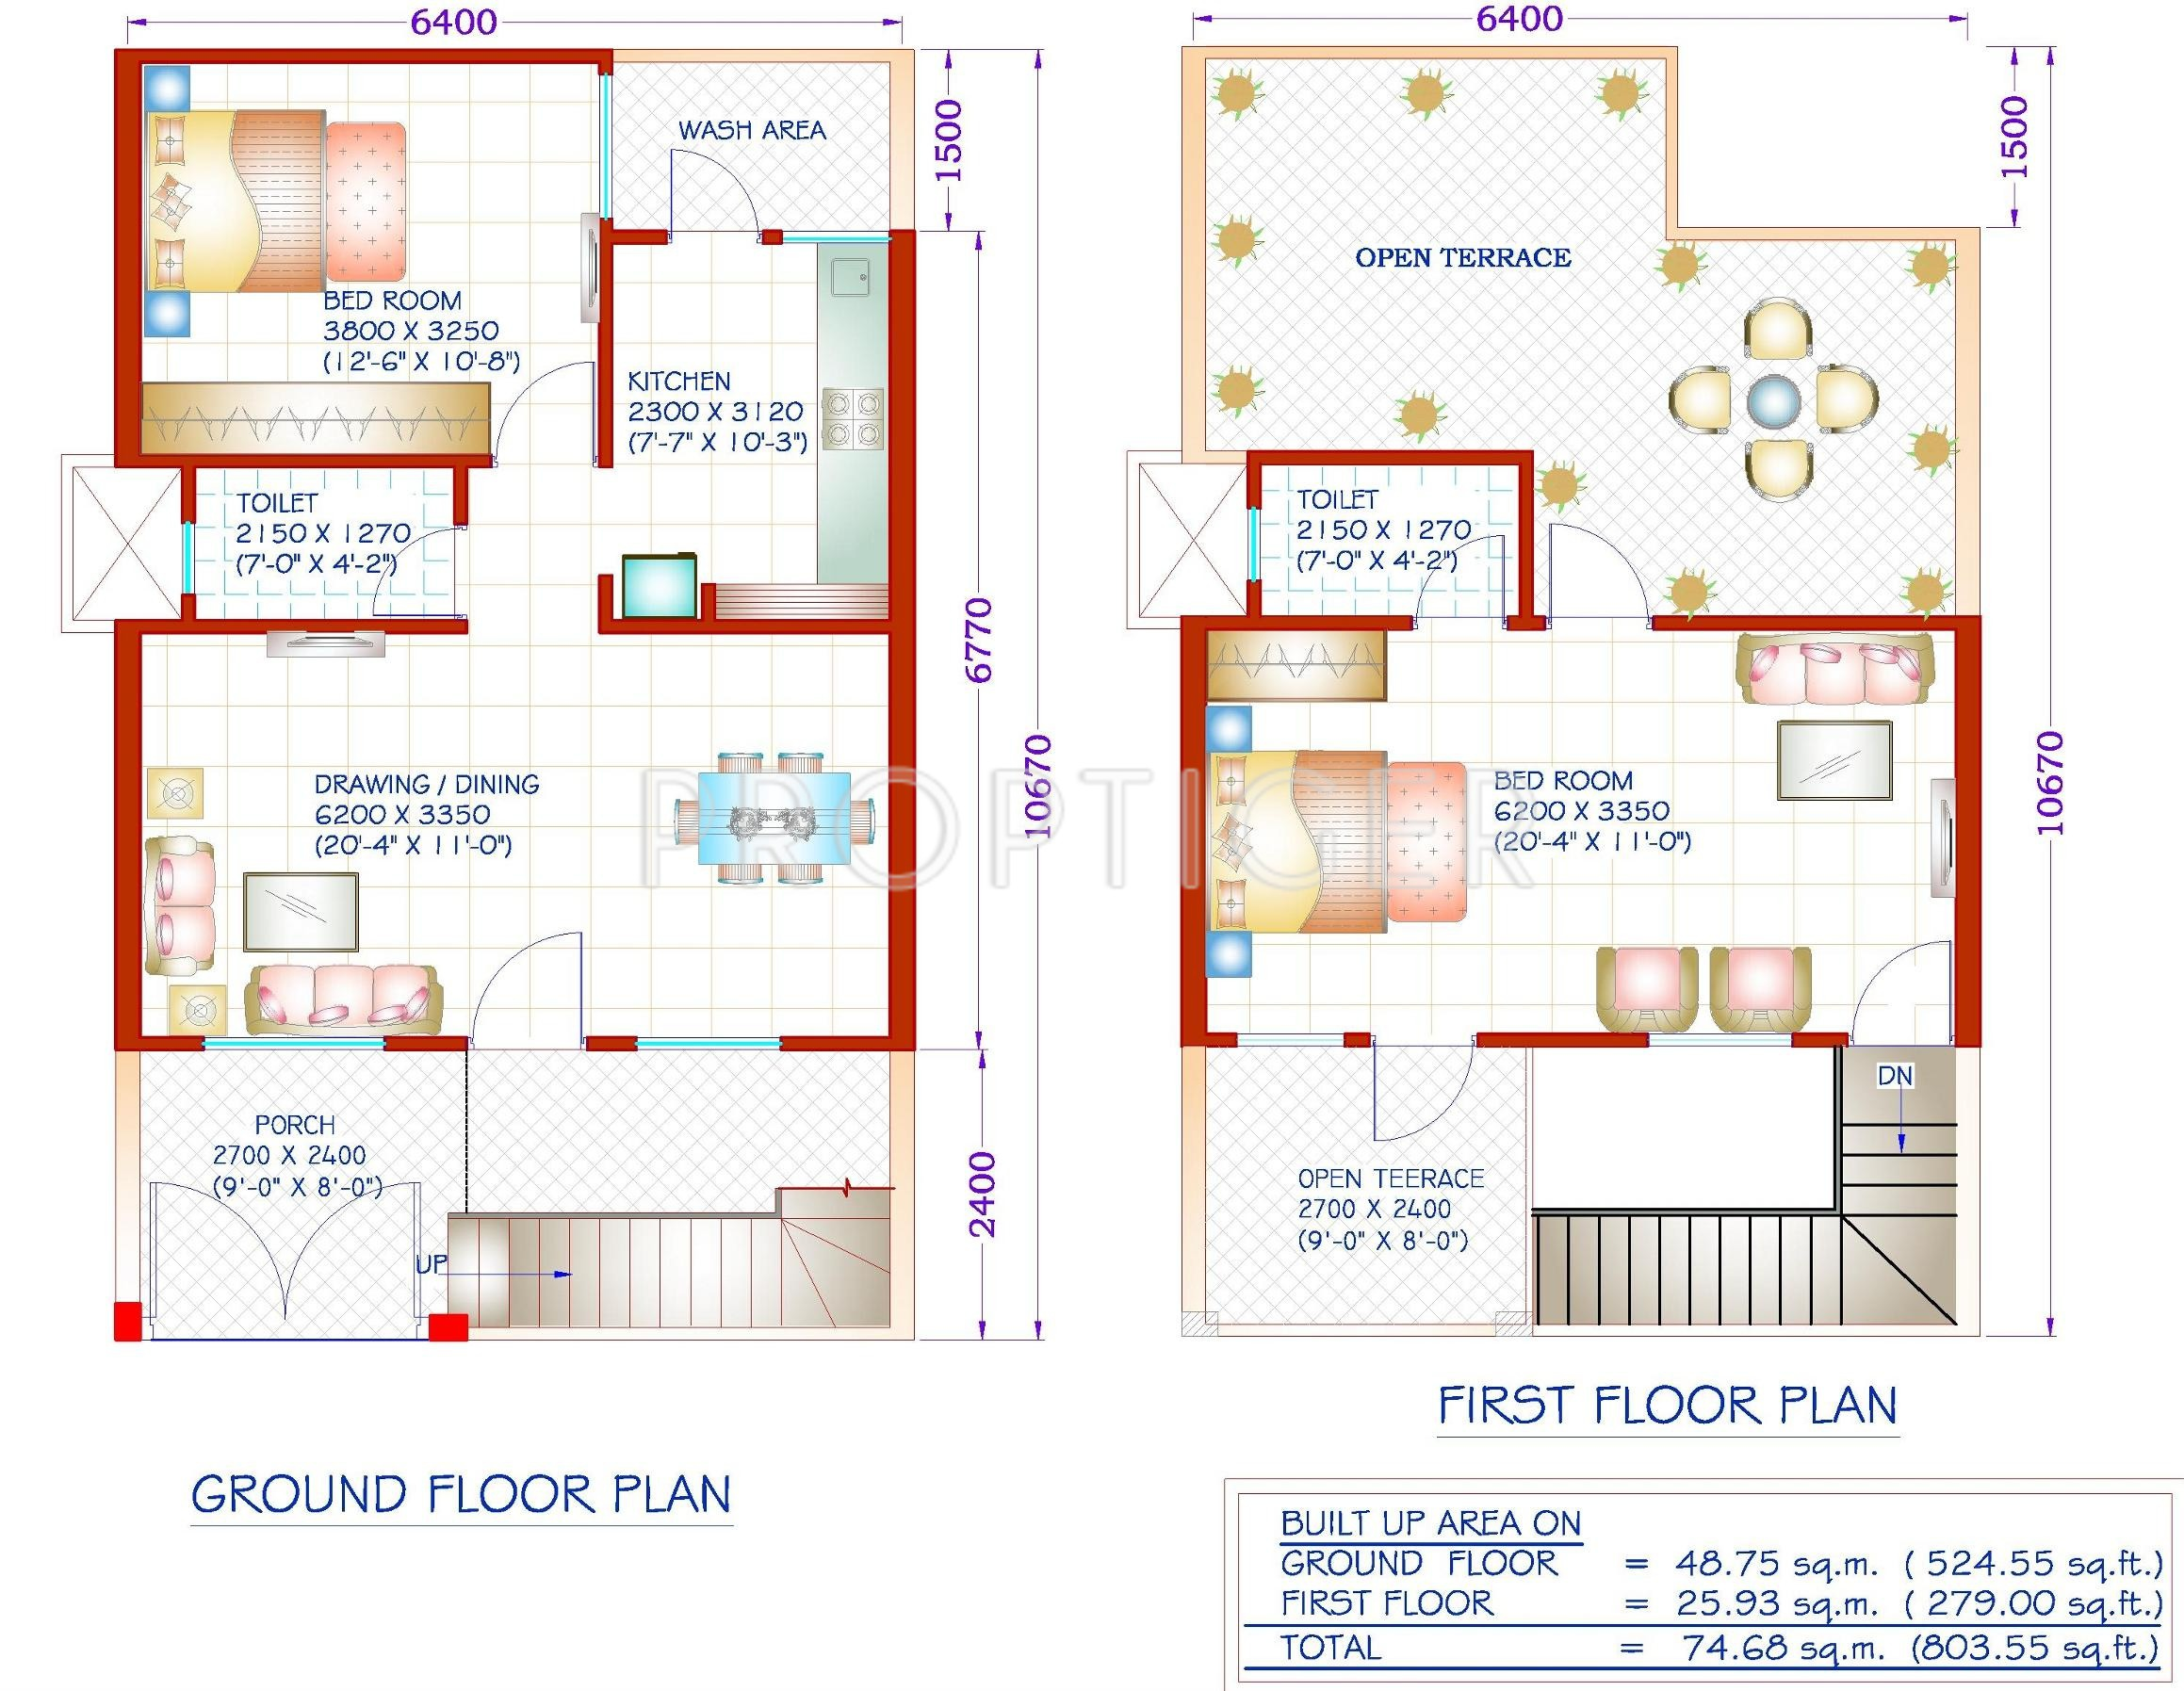 House plans 800 square feet india congresos pontevedra com ground